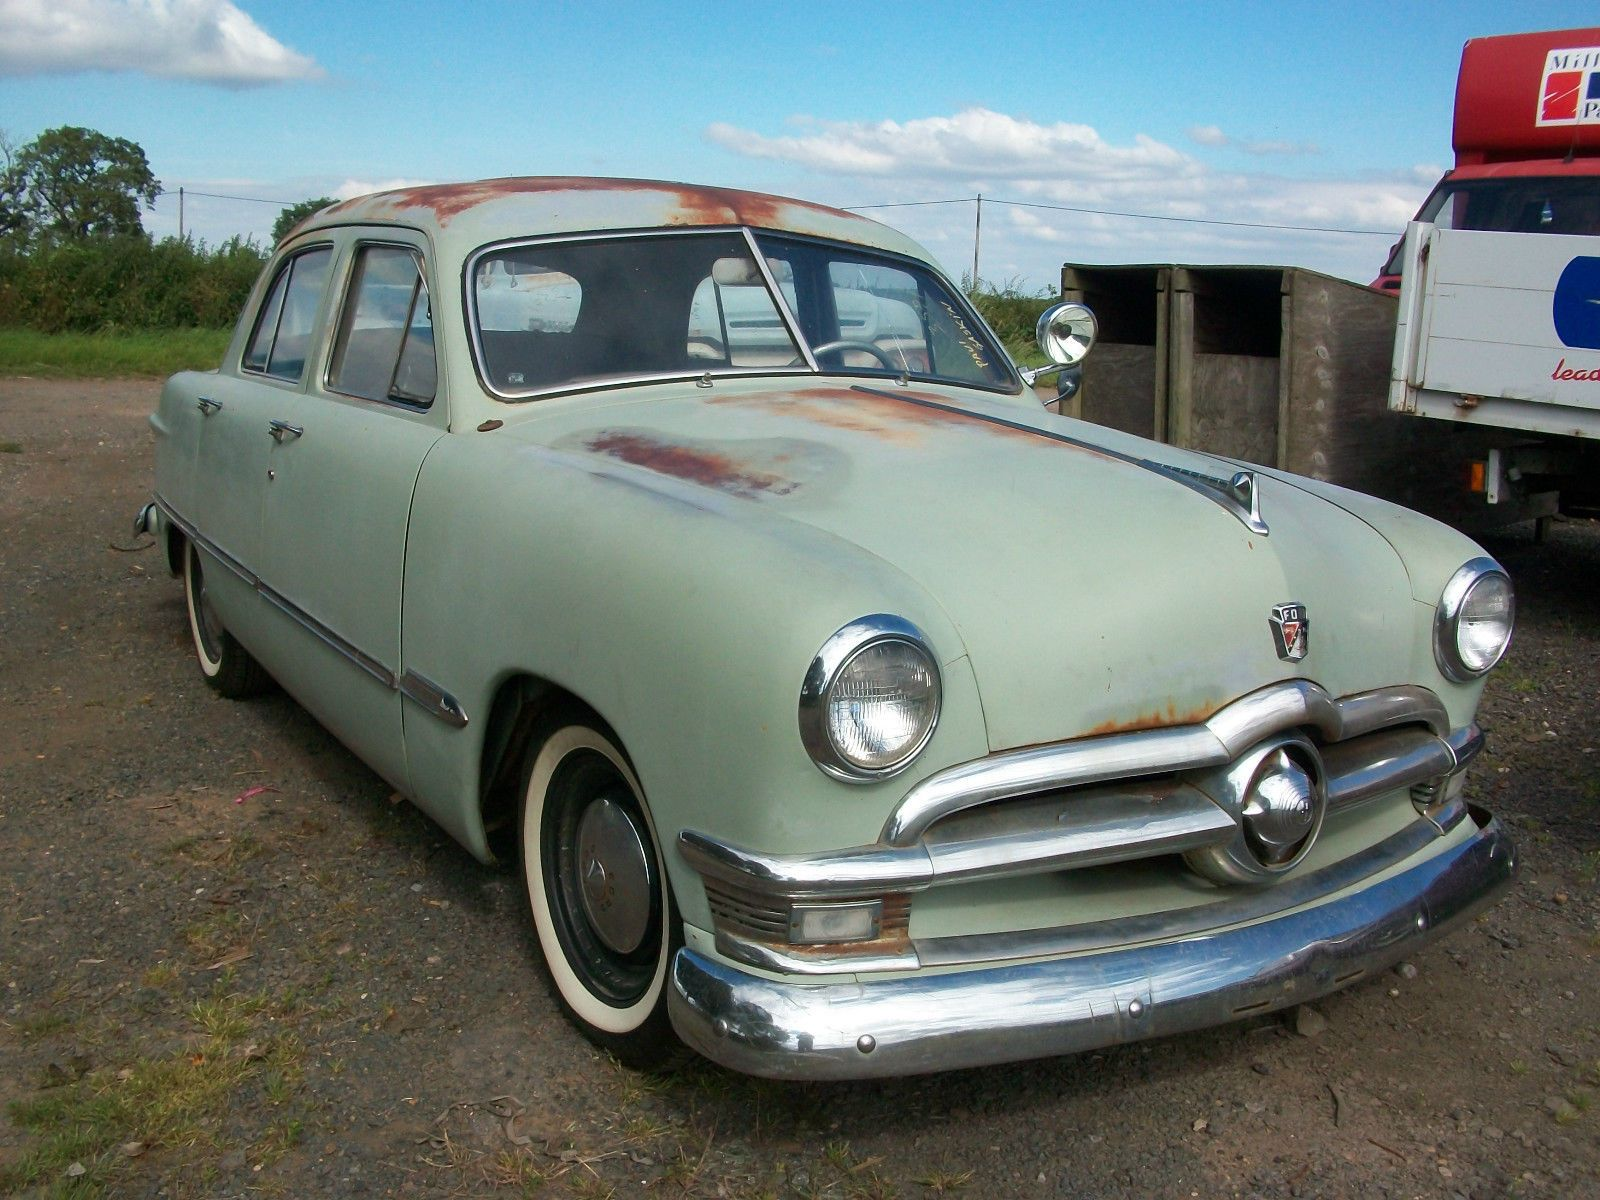 1950 ford shoebox sedan flathead v8 original patina classic american ...